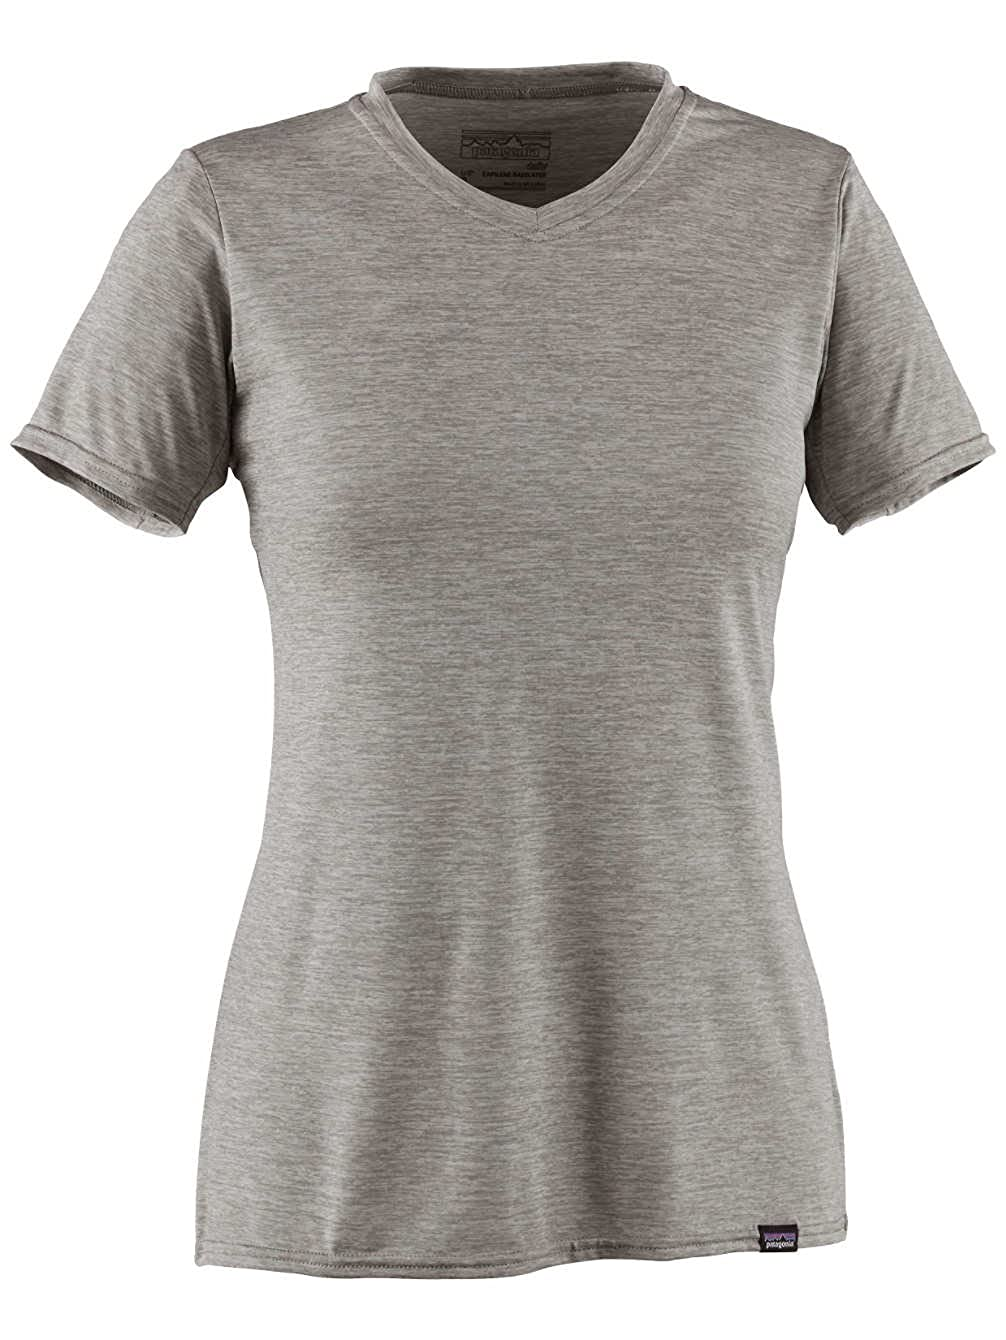 74779ee06cc7 Amazon.com: Patagonia Capilene Daily T-Shirt - Women's: Sports & Outdoors